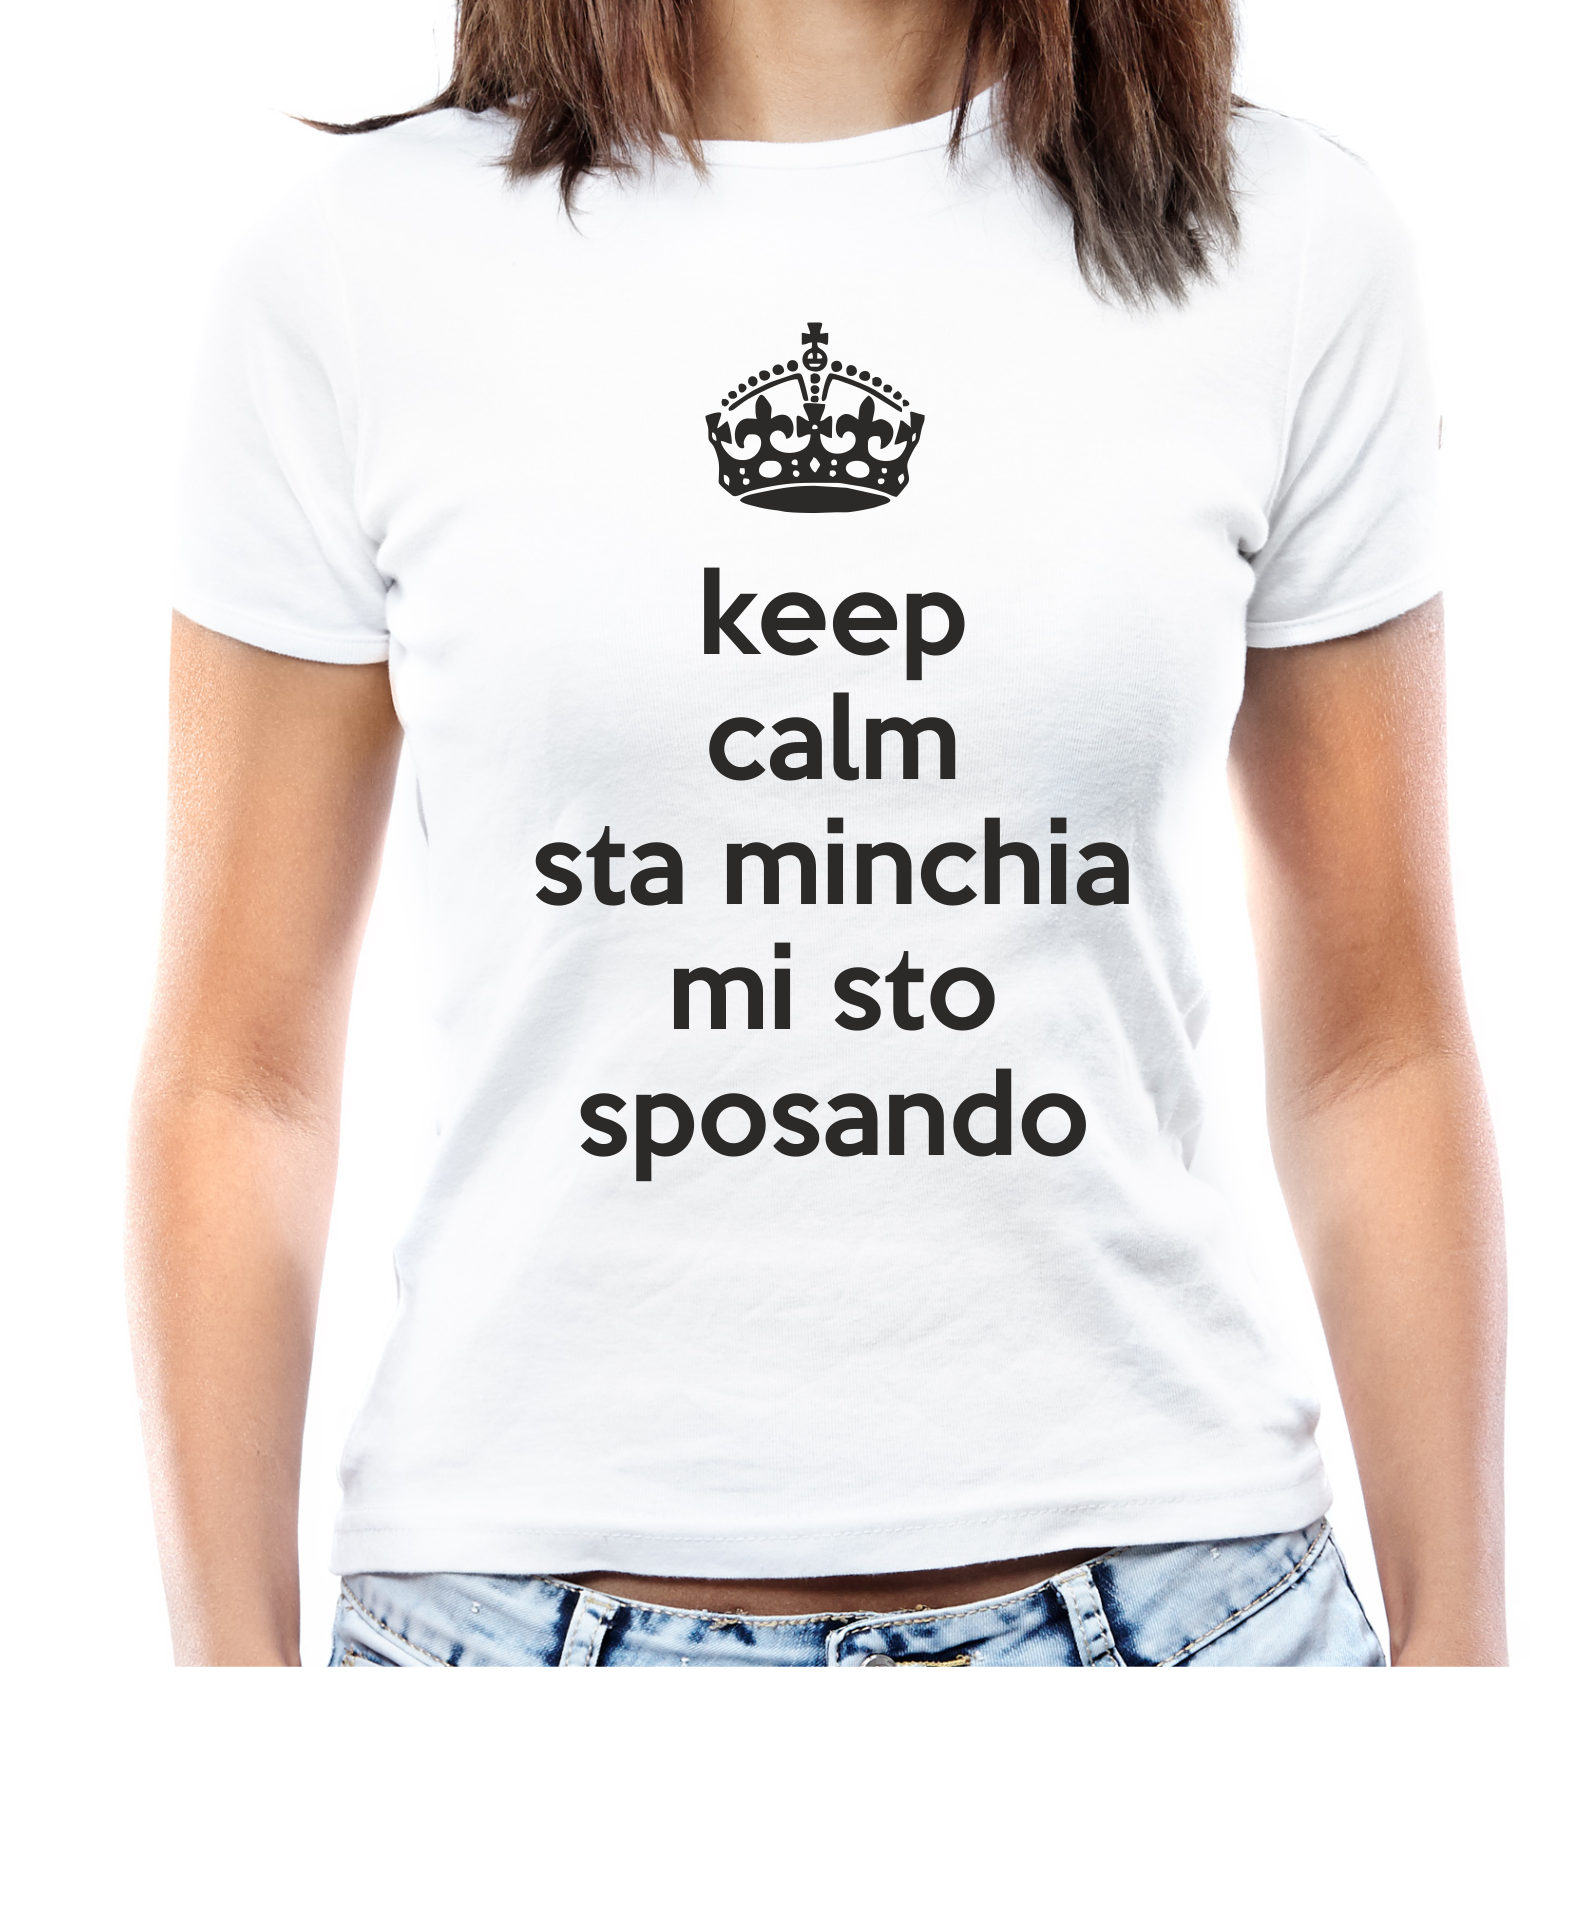 F19 – keep calm sta minchia mi sto sposando